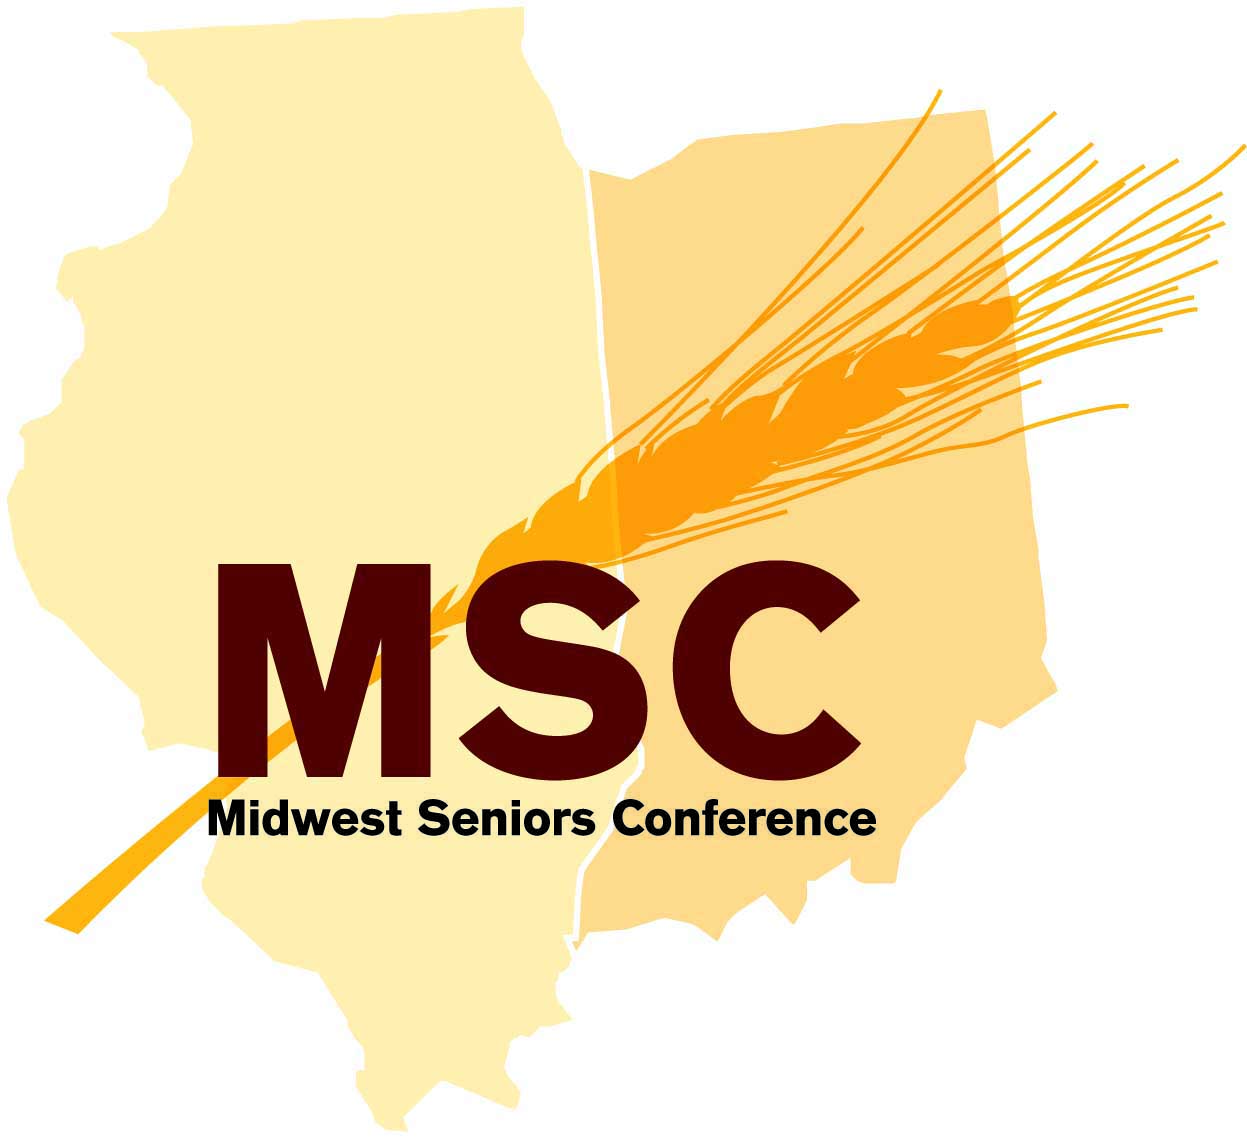 midwest senior conference